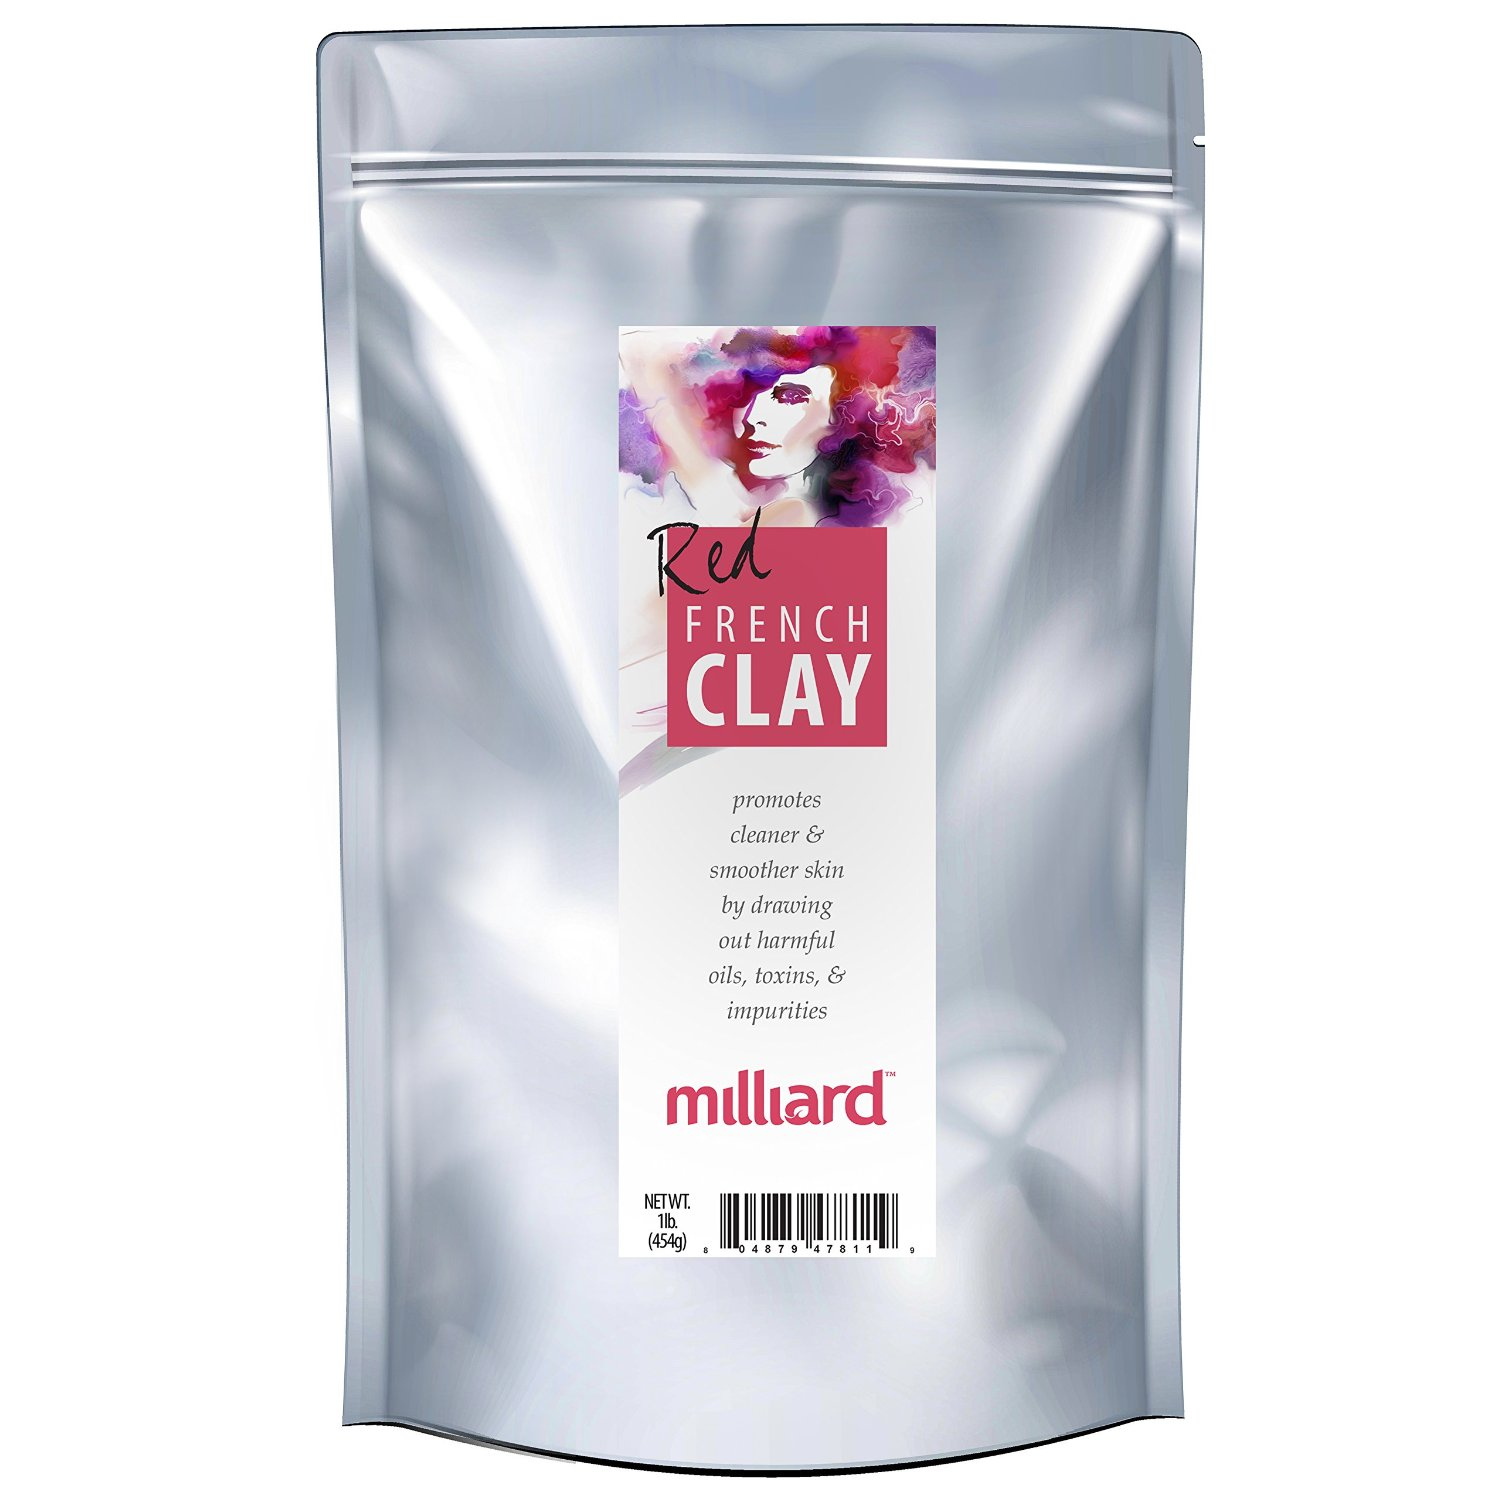 MILLIARD 100% Pure and Natural French Red Clay - Facial and Body Mask - 1 lb.